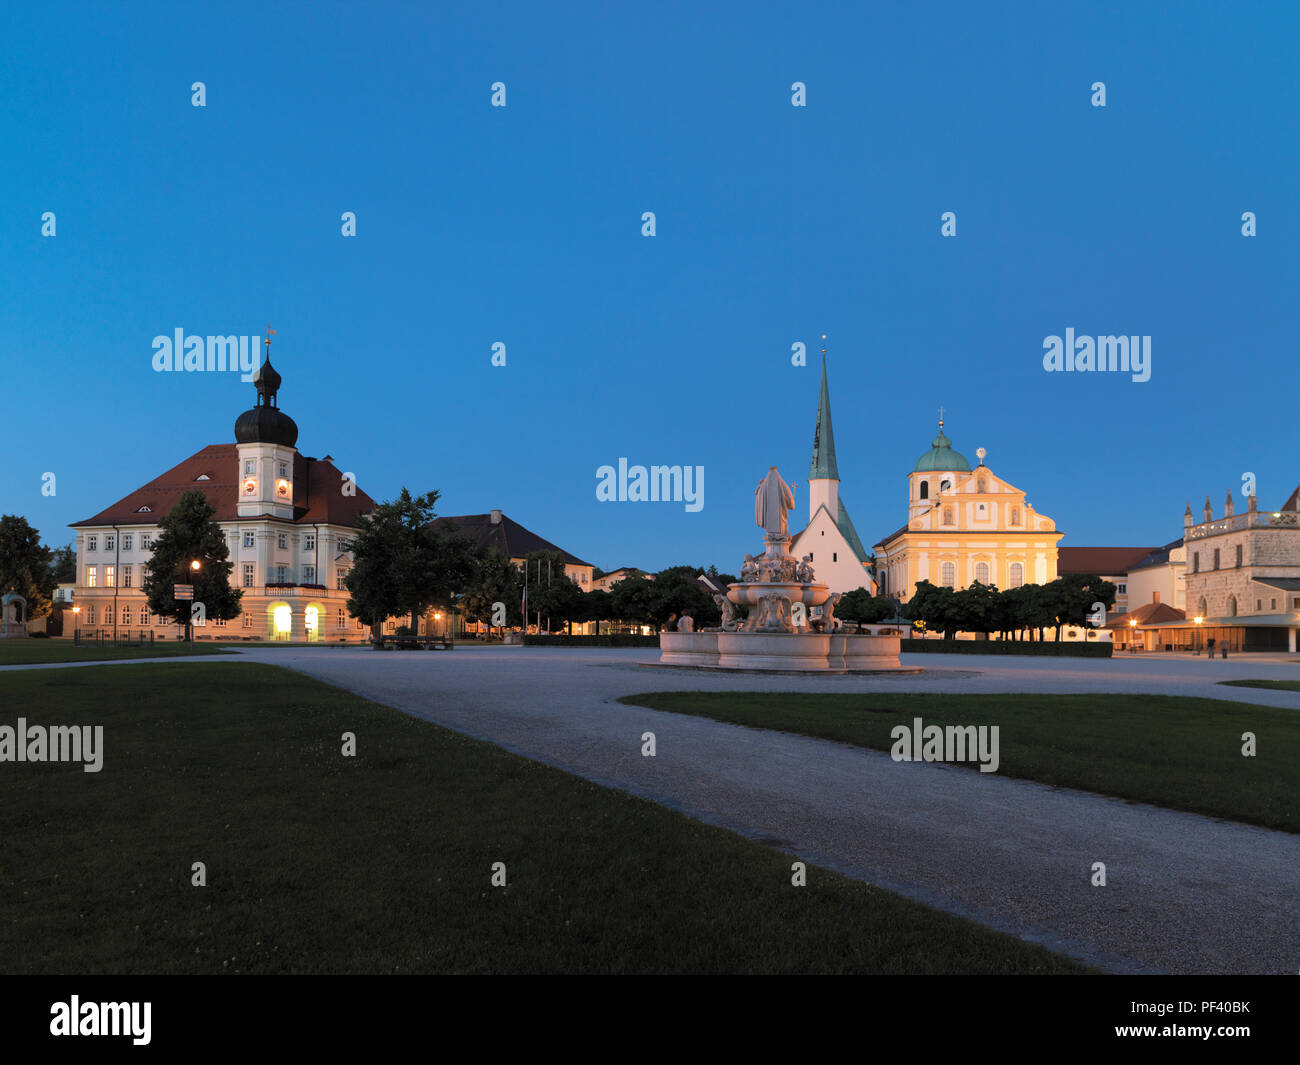 Kapellplatz,, Altötting, Oberbayern, Deutschland | Altötting, Bavaria, Germany - Stock Image